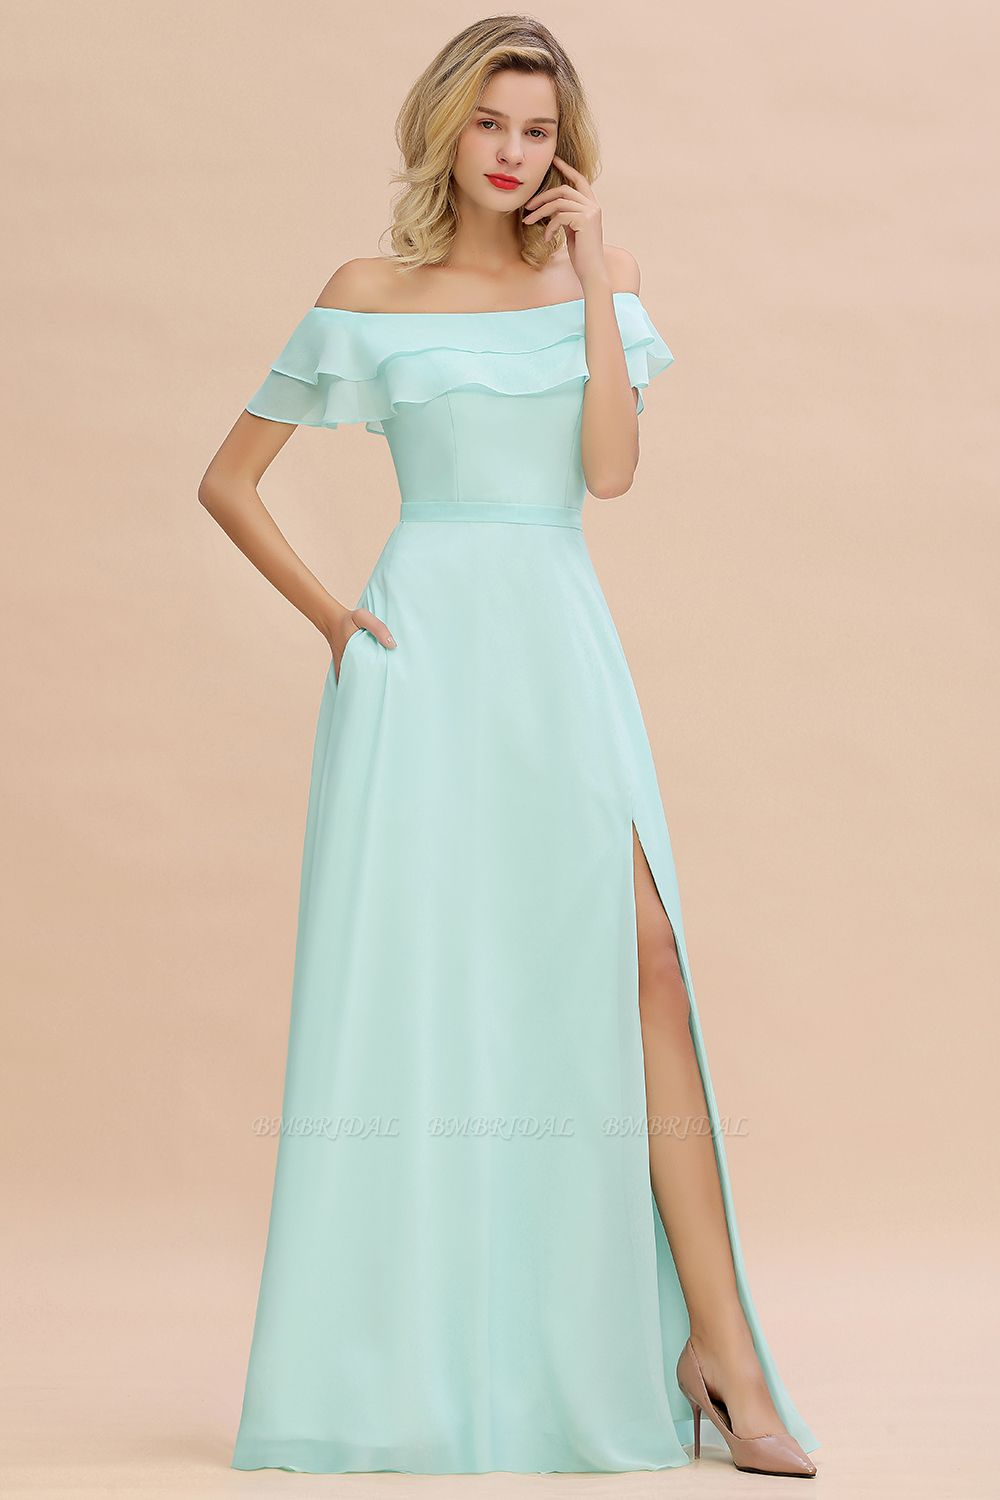 What To Consider When Finding A Perfect Bridesmaid Dress